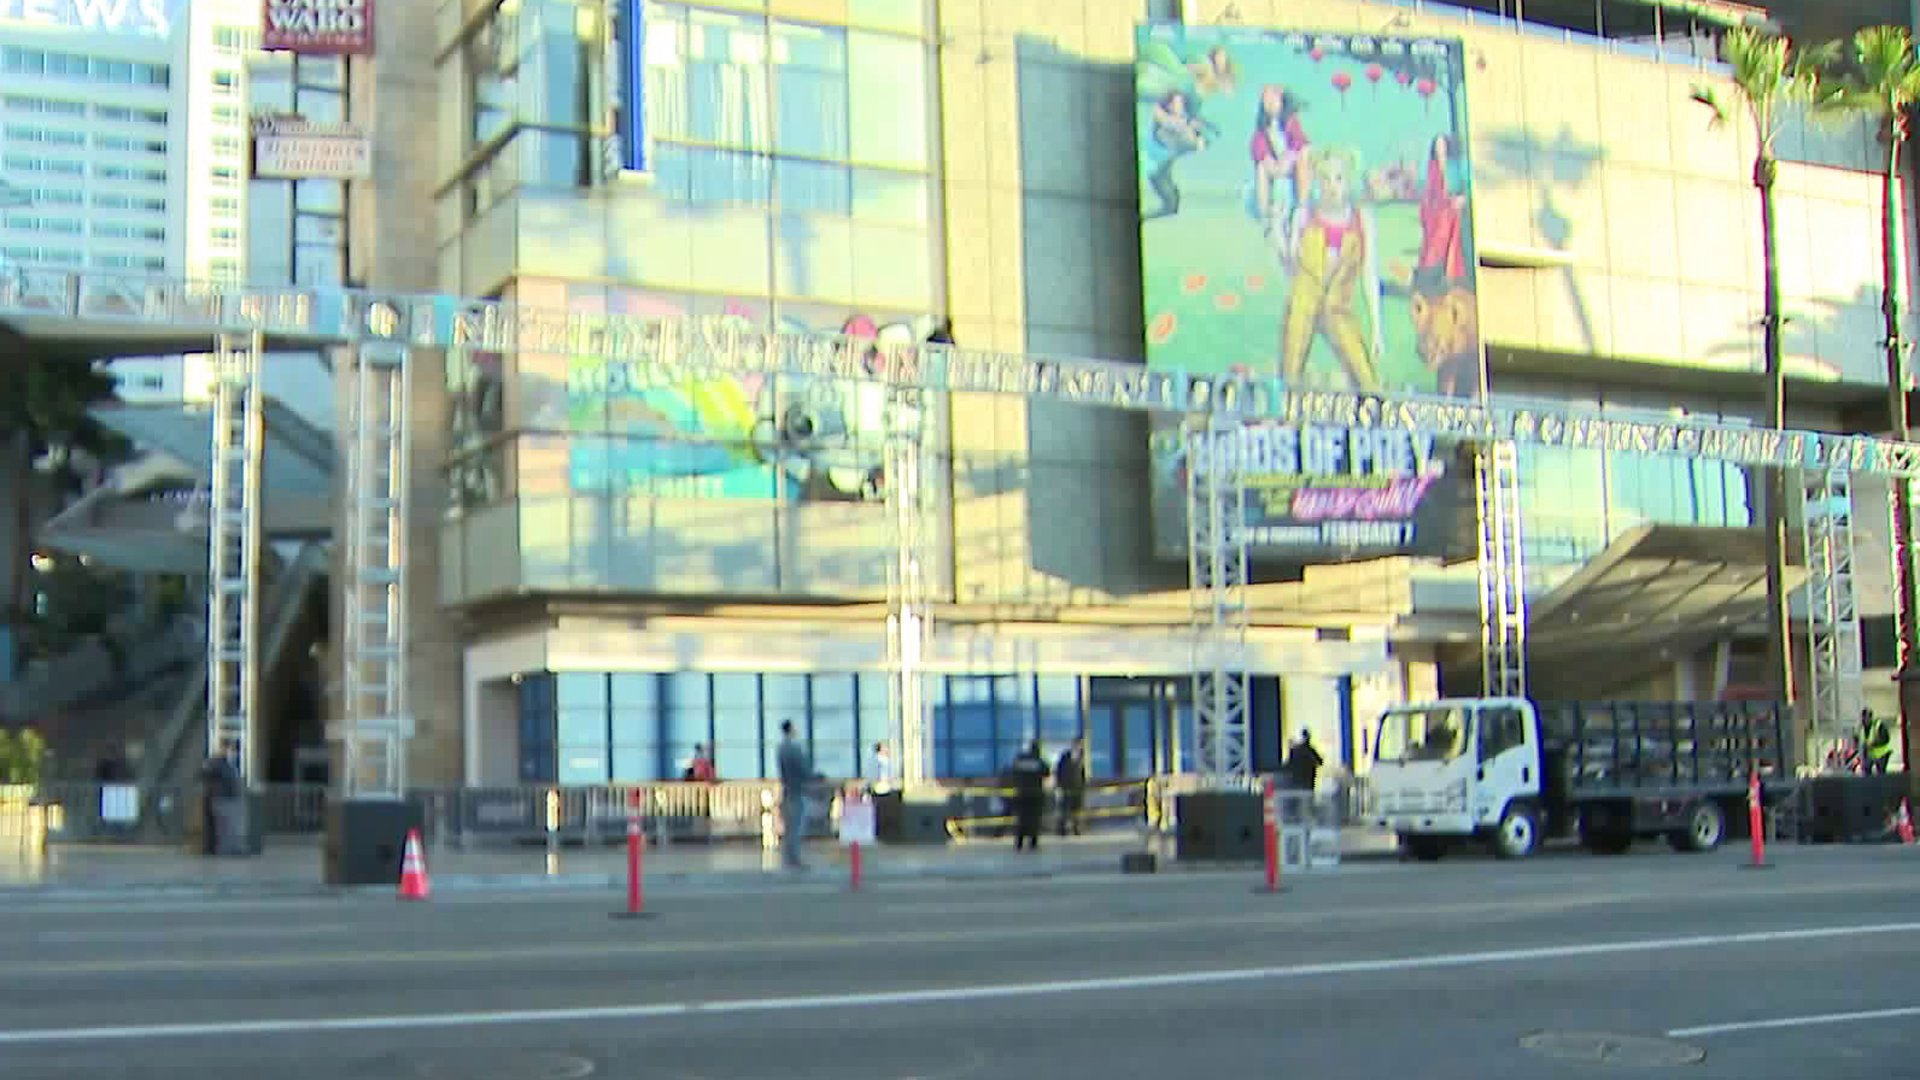 A man remains on a scaffolding outside the Dolby Theatre in Hollywood on Feb. 1, 2020. (Credit: KTLA)